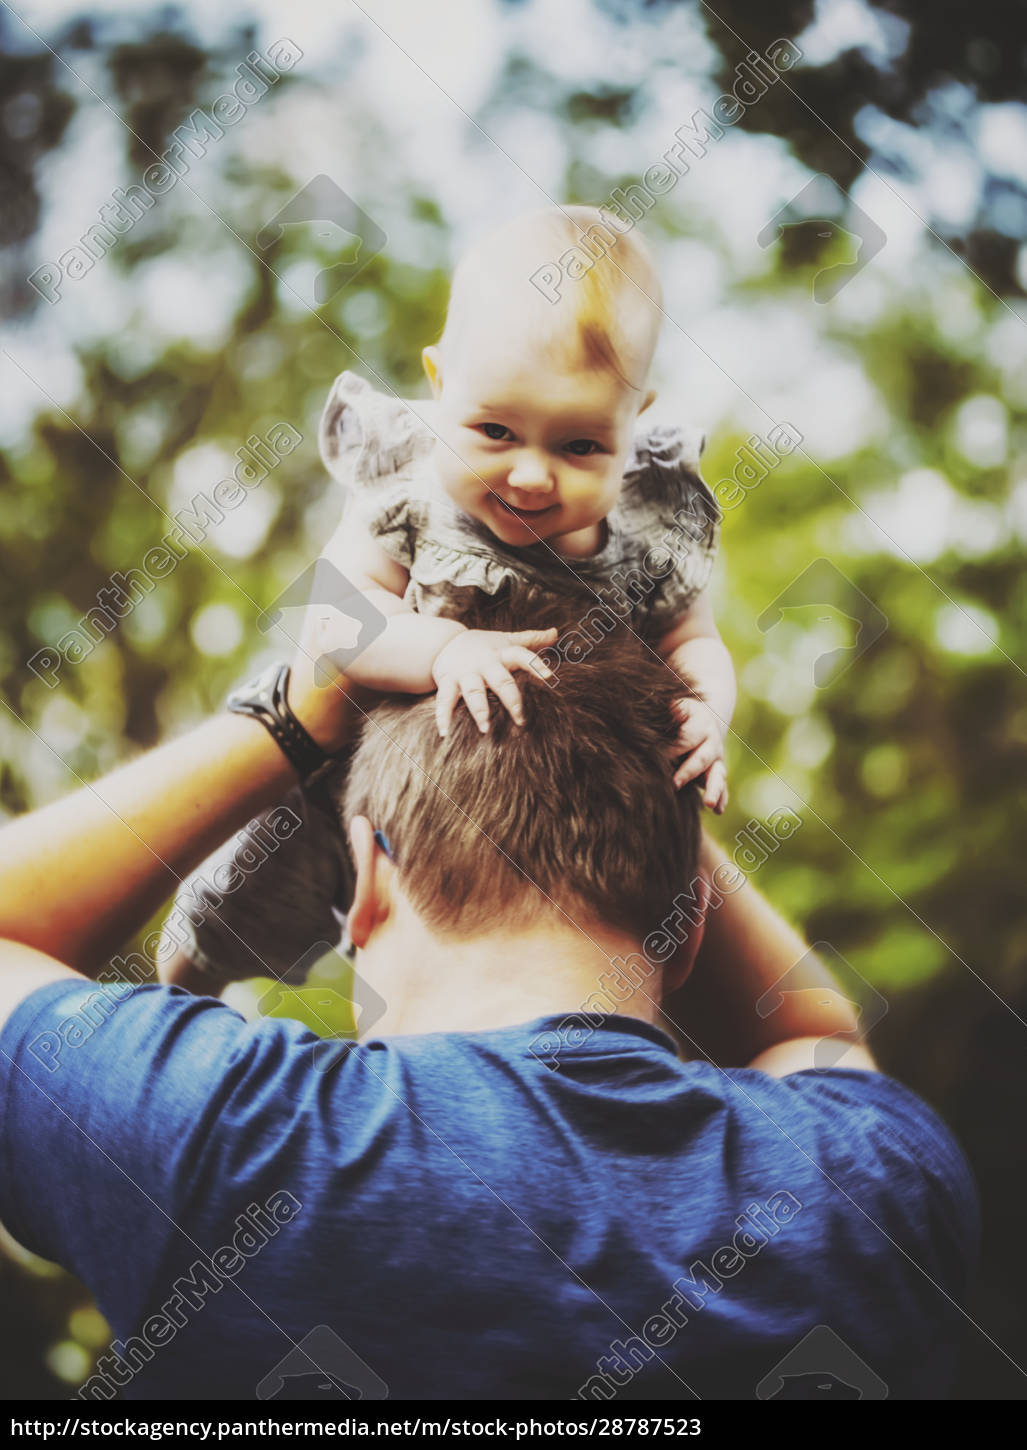 a, father, holding, his, baby, girl - 28787523